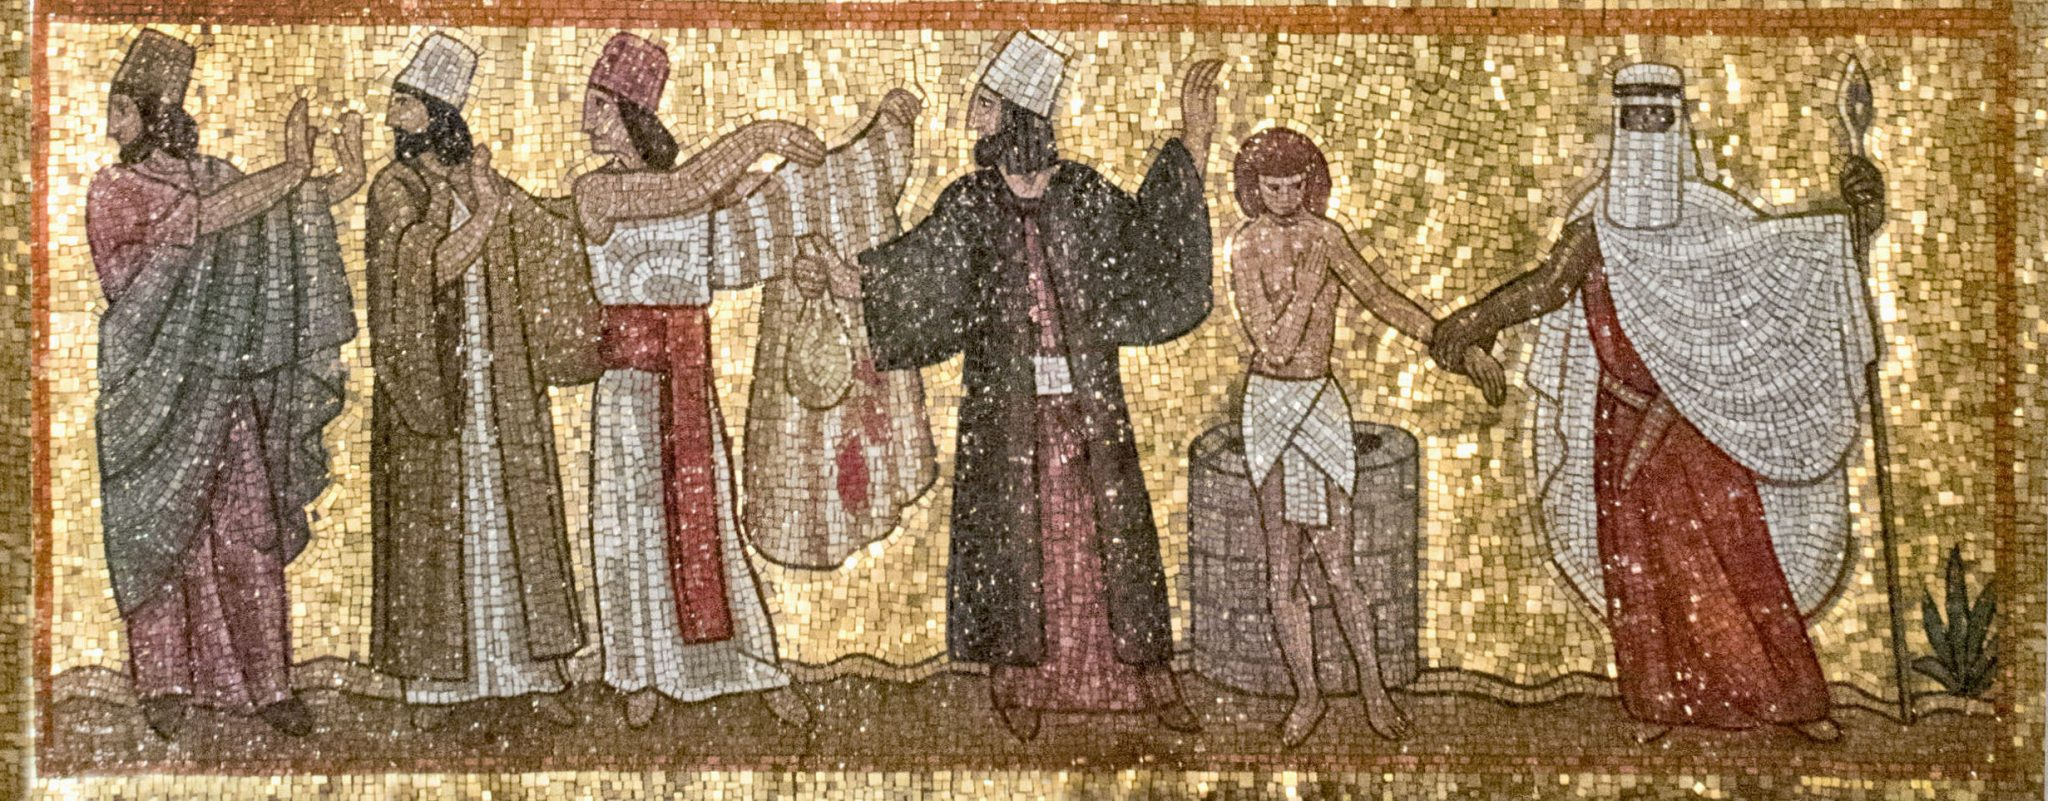 oseph mosaic portion in the Resurrection Chapel